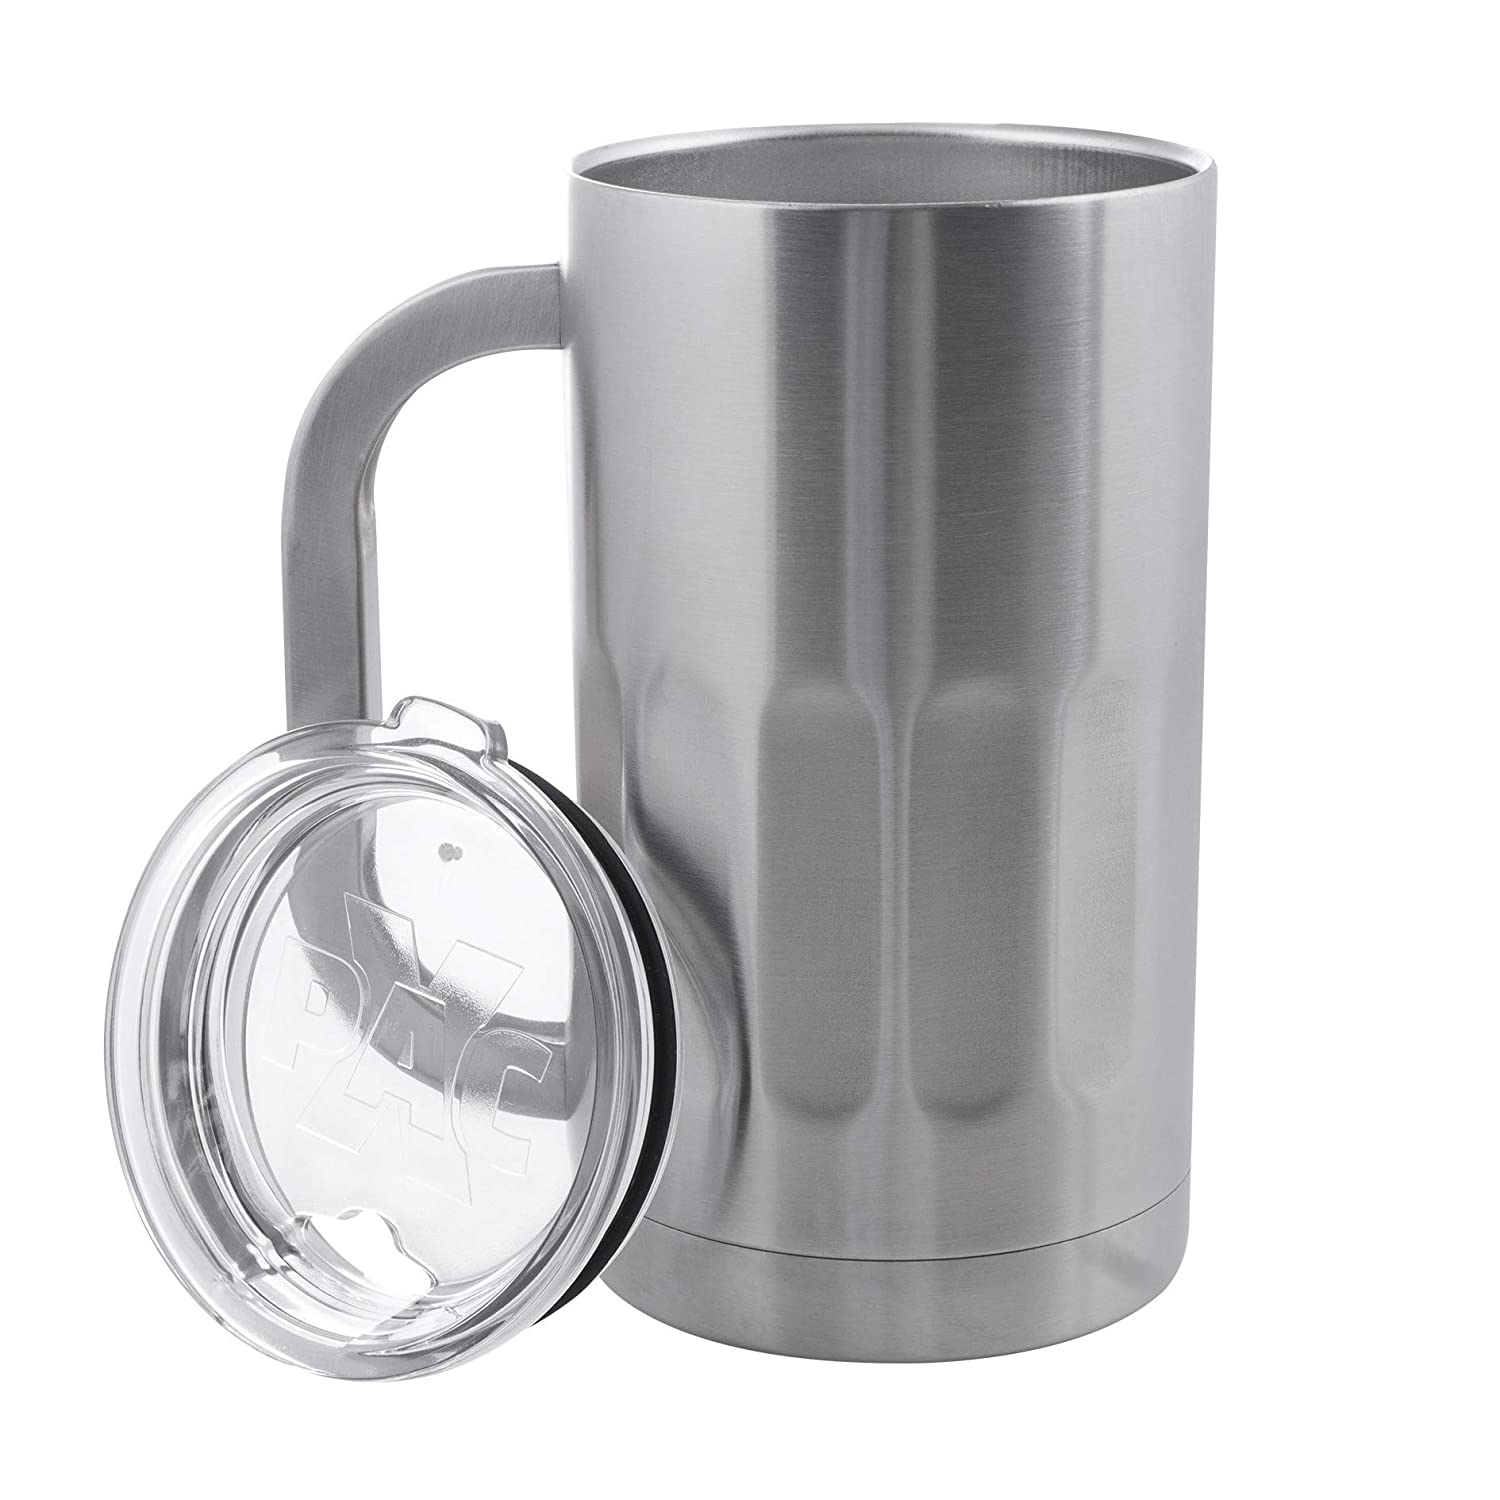 Shatterproof and Spill Resistant 20 Ounce Double Walled Vacuum Insulated Beer Mug by Maxam Stainless Steel Beer Mug with Lids